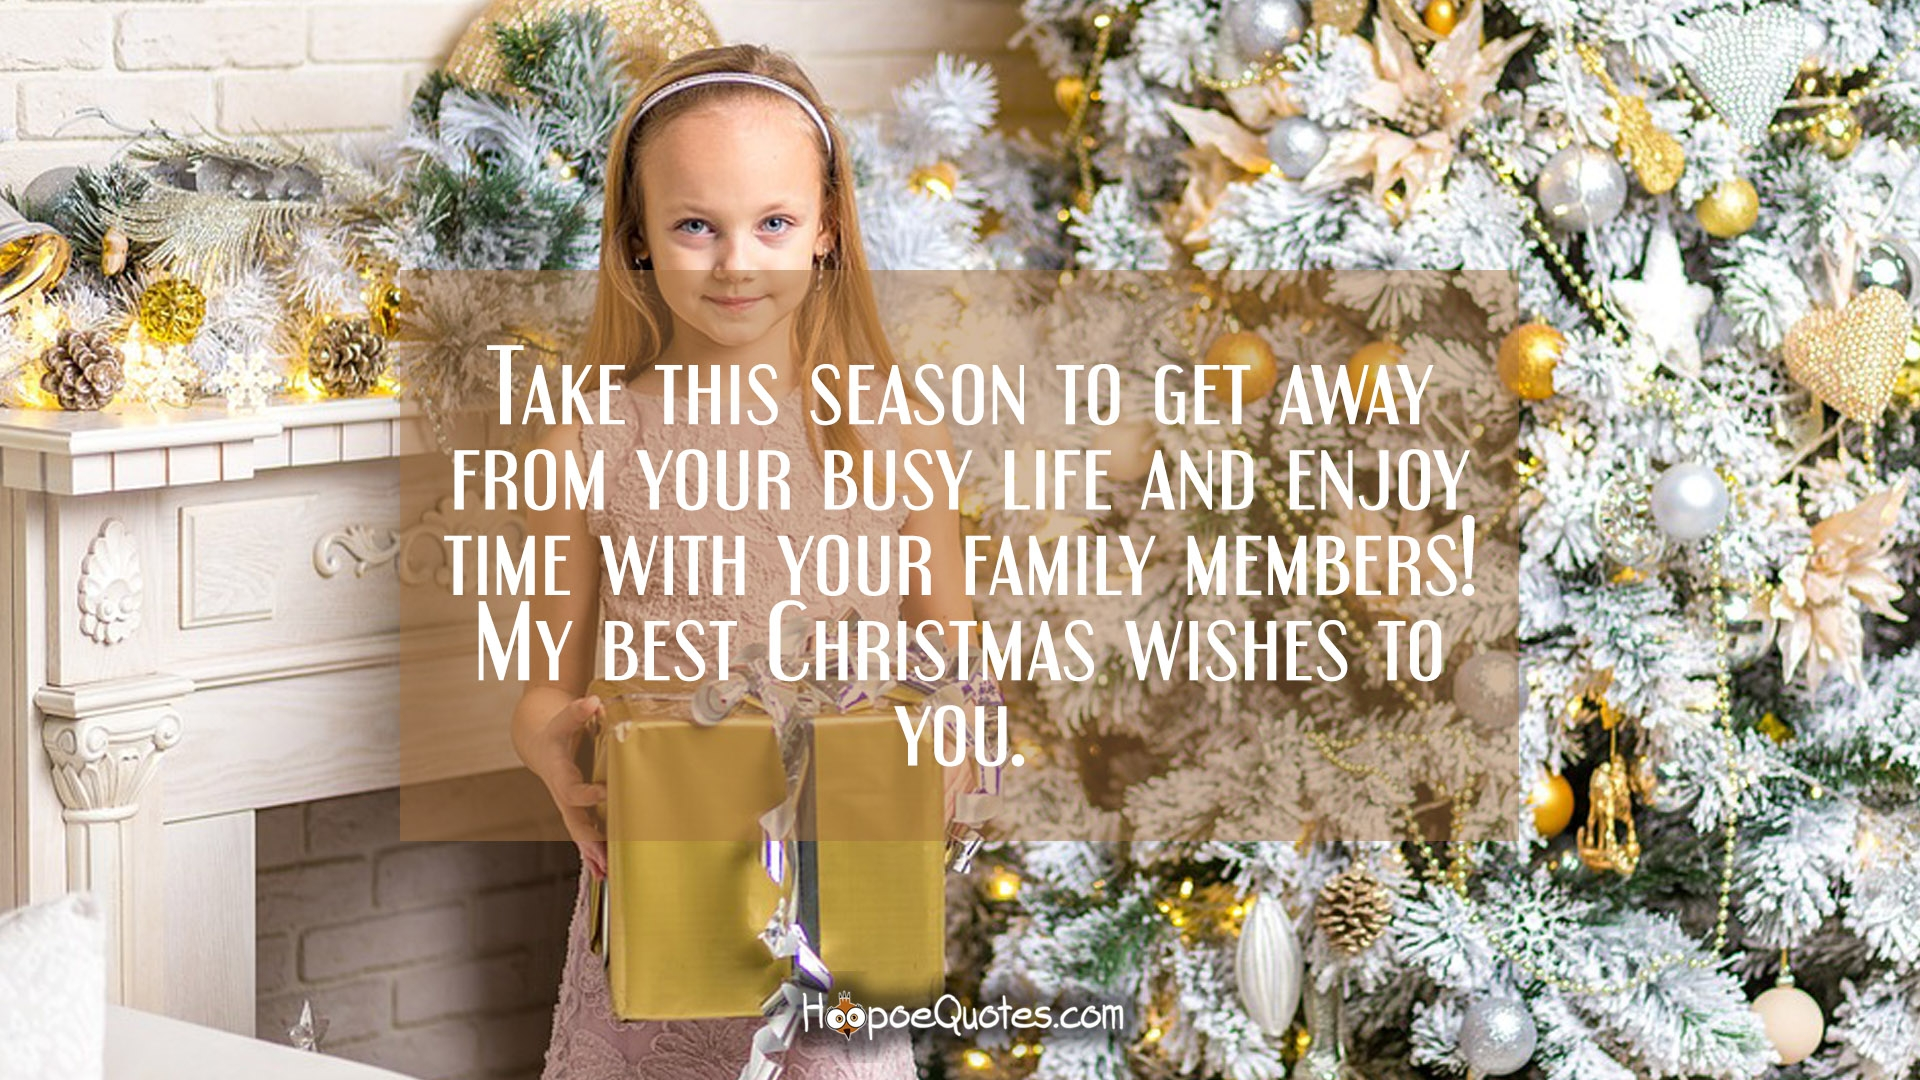 Take This Season To Get Away From Your Busy Life And Enjoy Time With Your Family  Members! My Best Christmas Wishes To You.